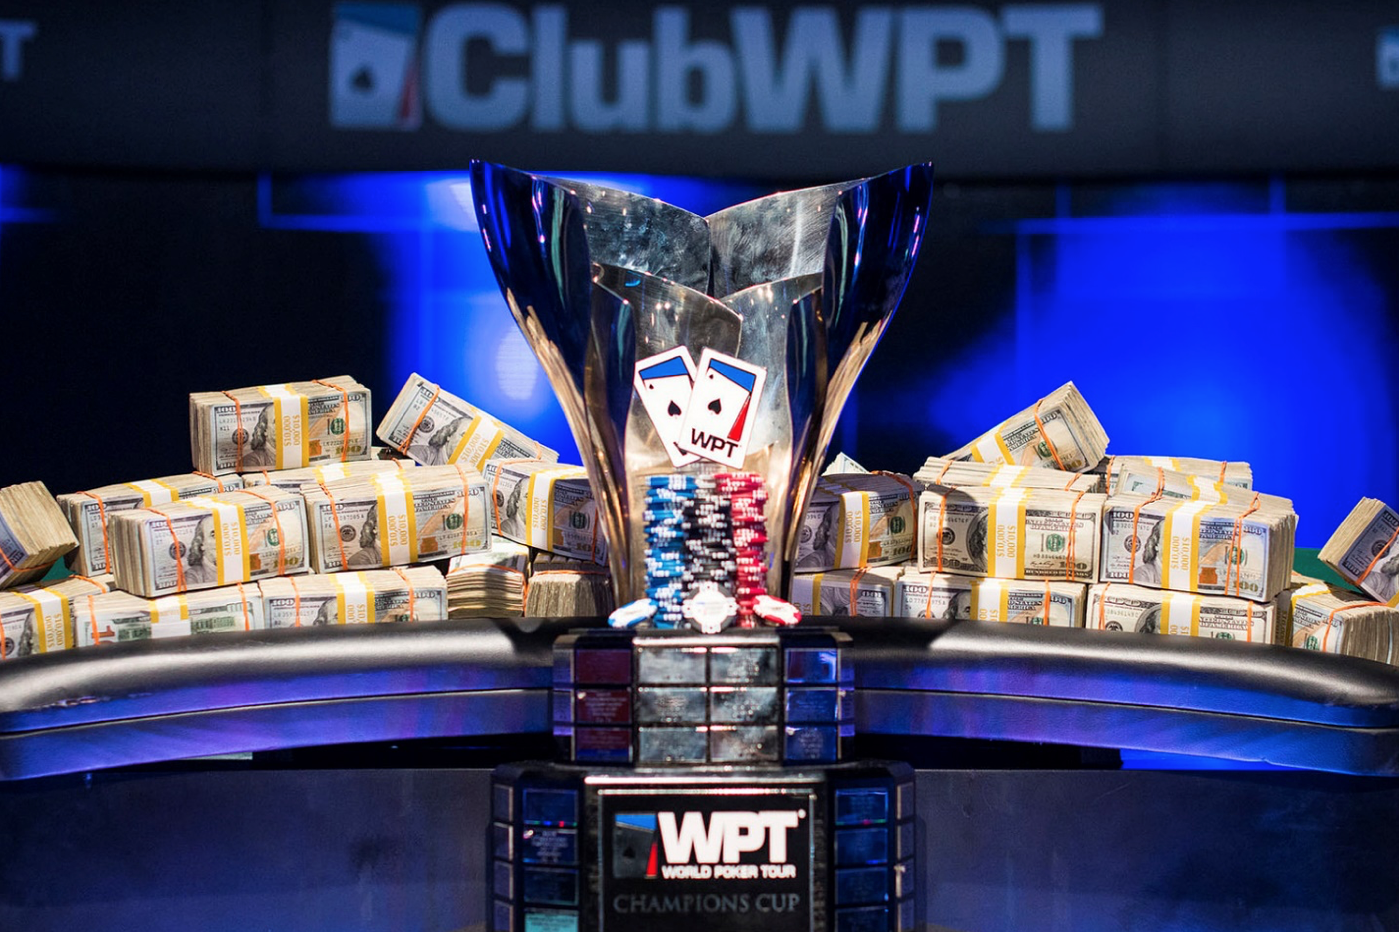 WPT Championship Cup